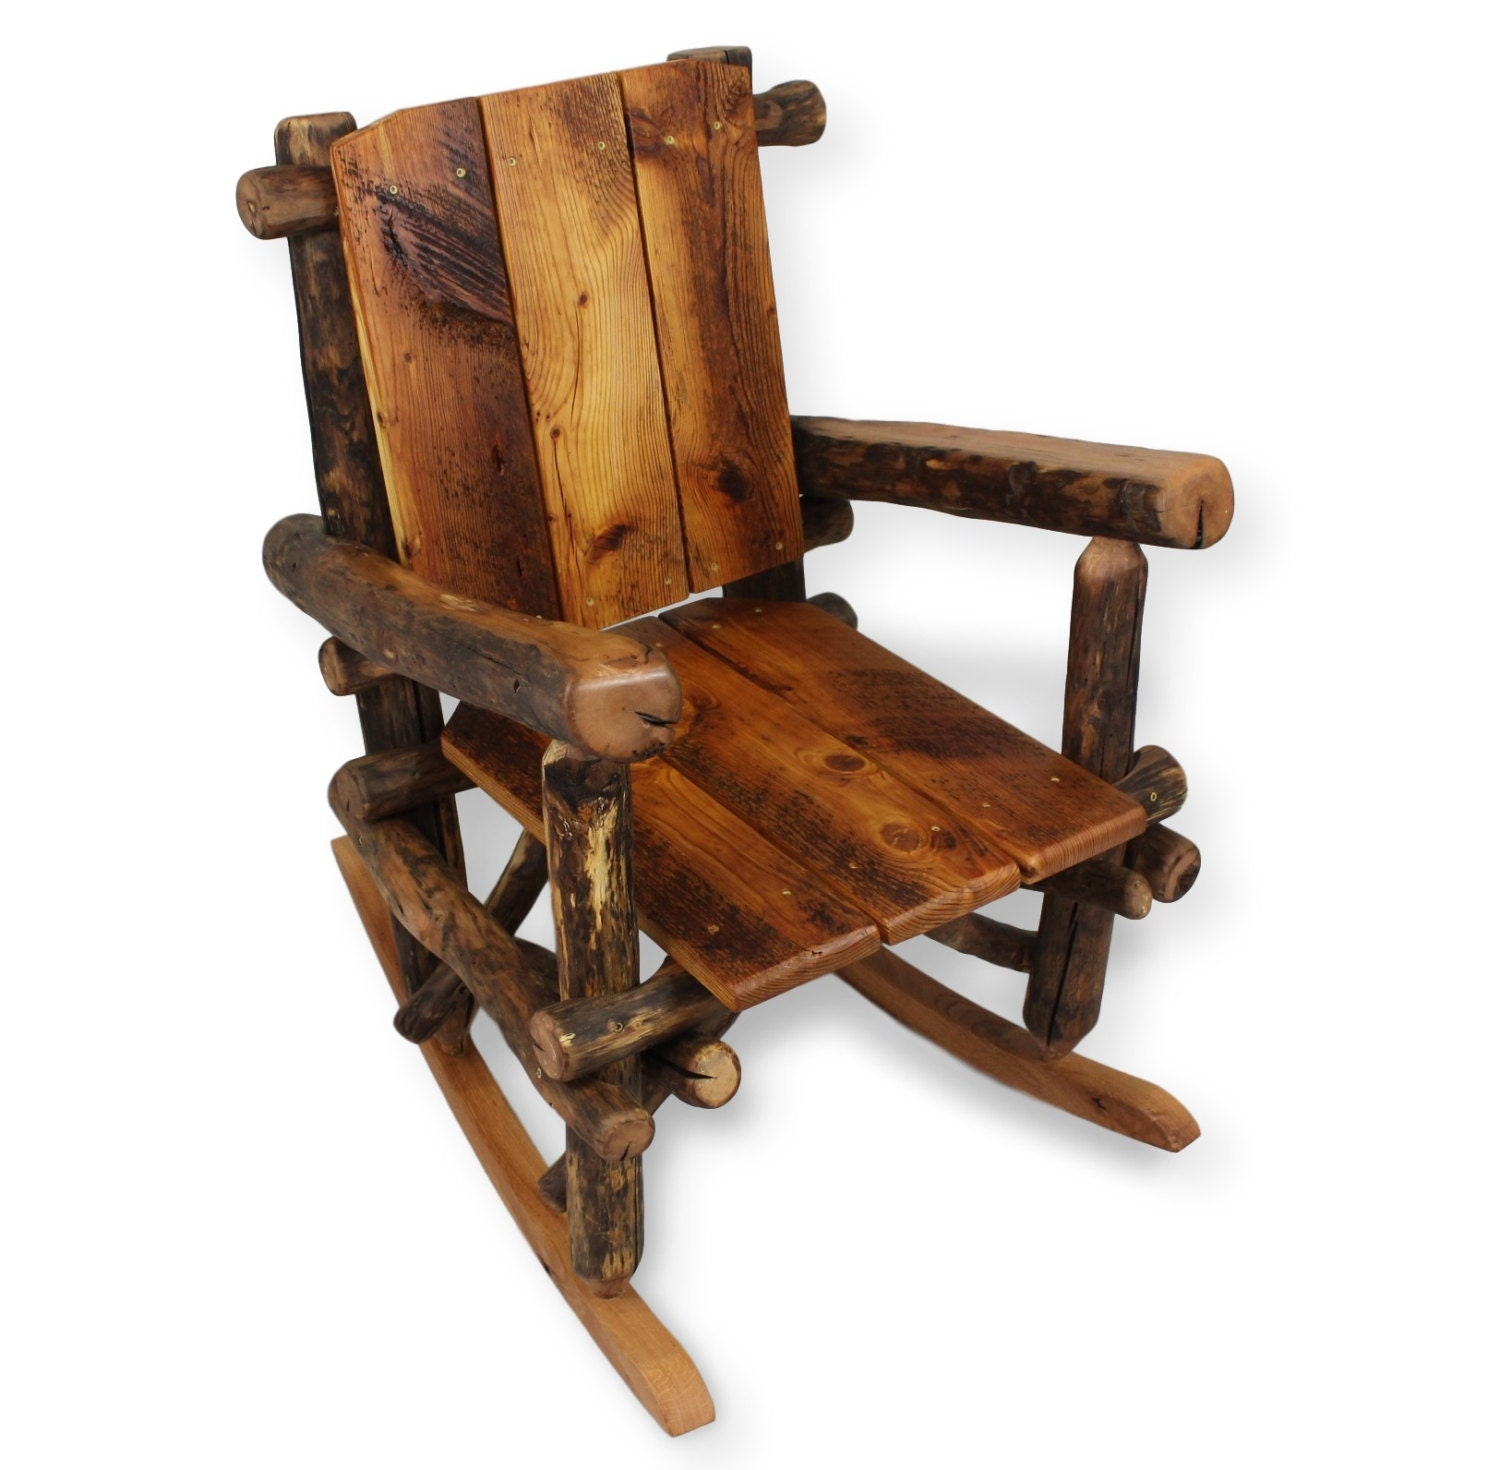 Rustic Rocking Chair Reclaimed Wood Chair Porch Furniture